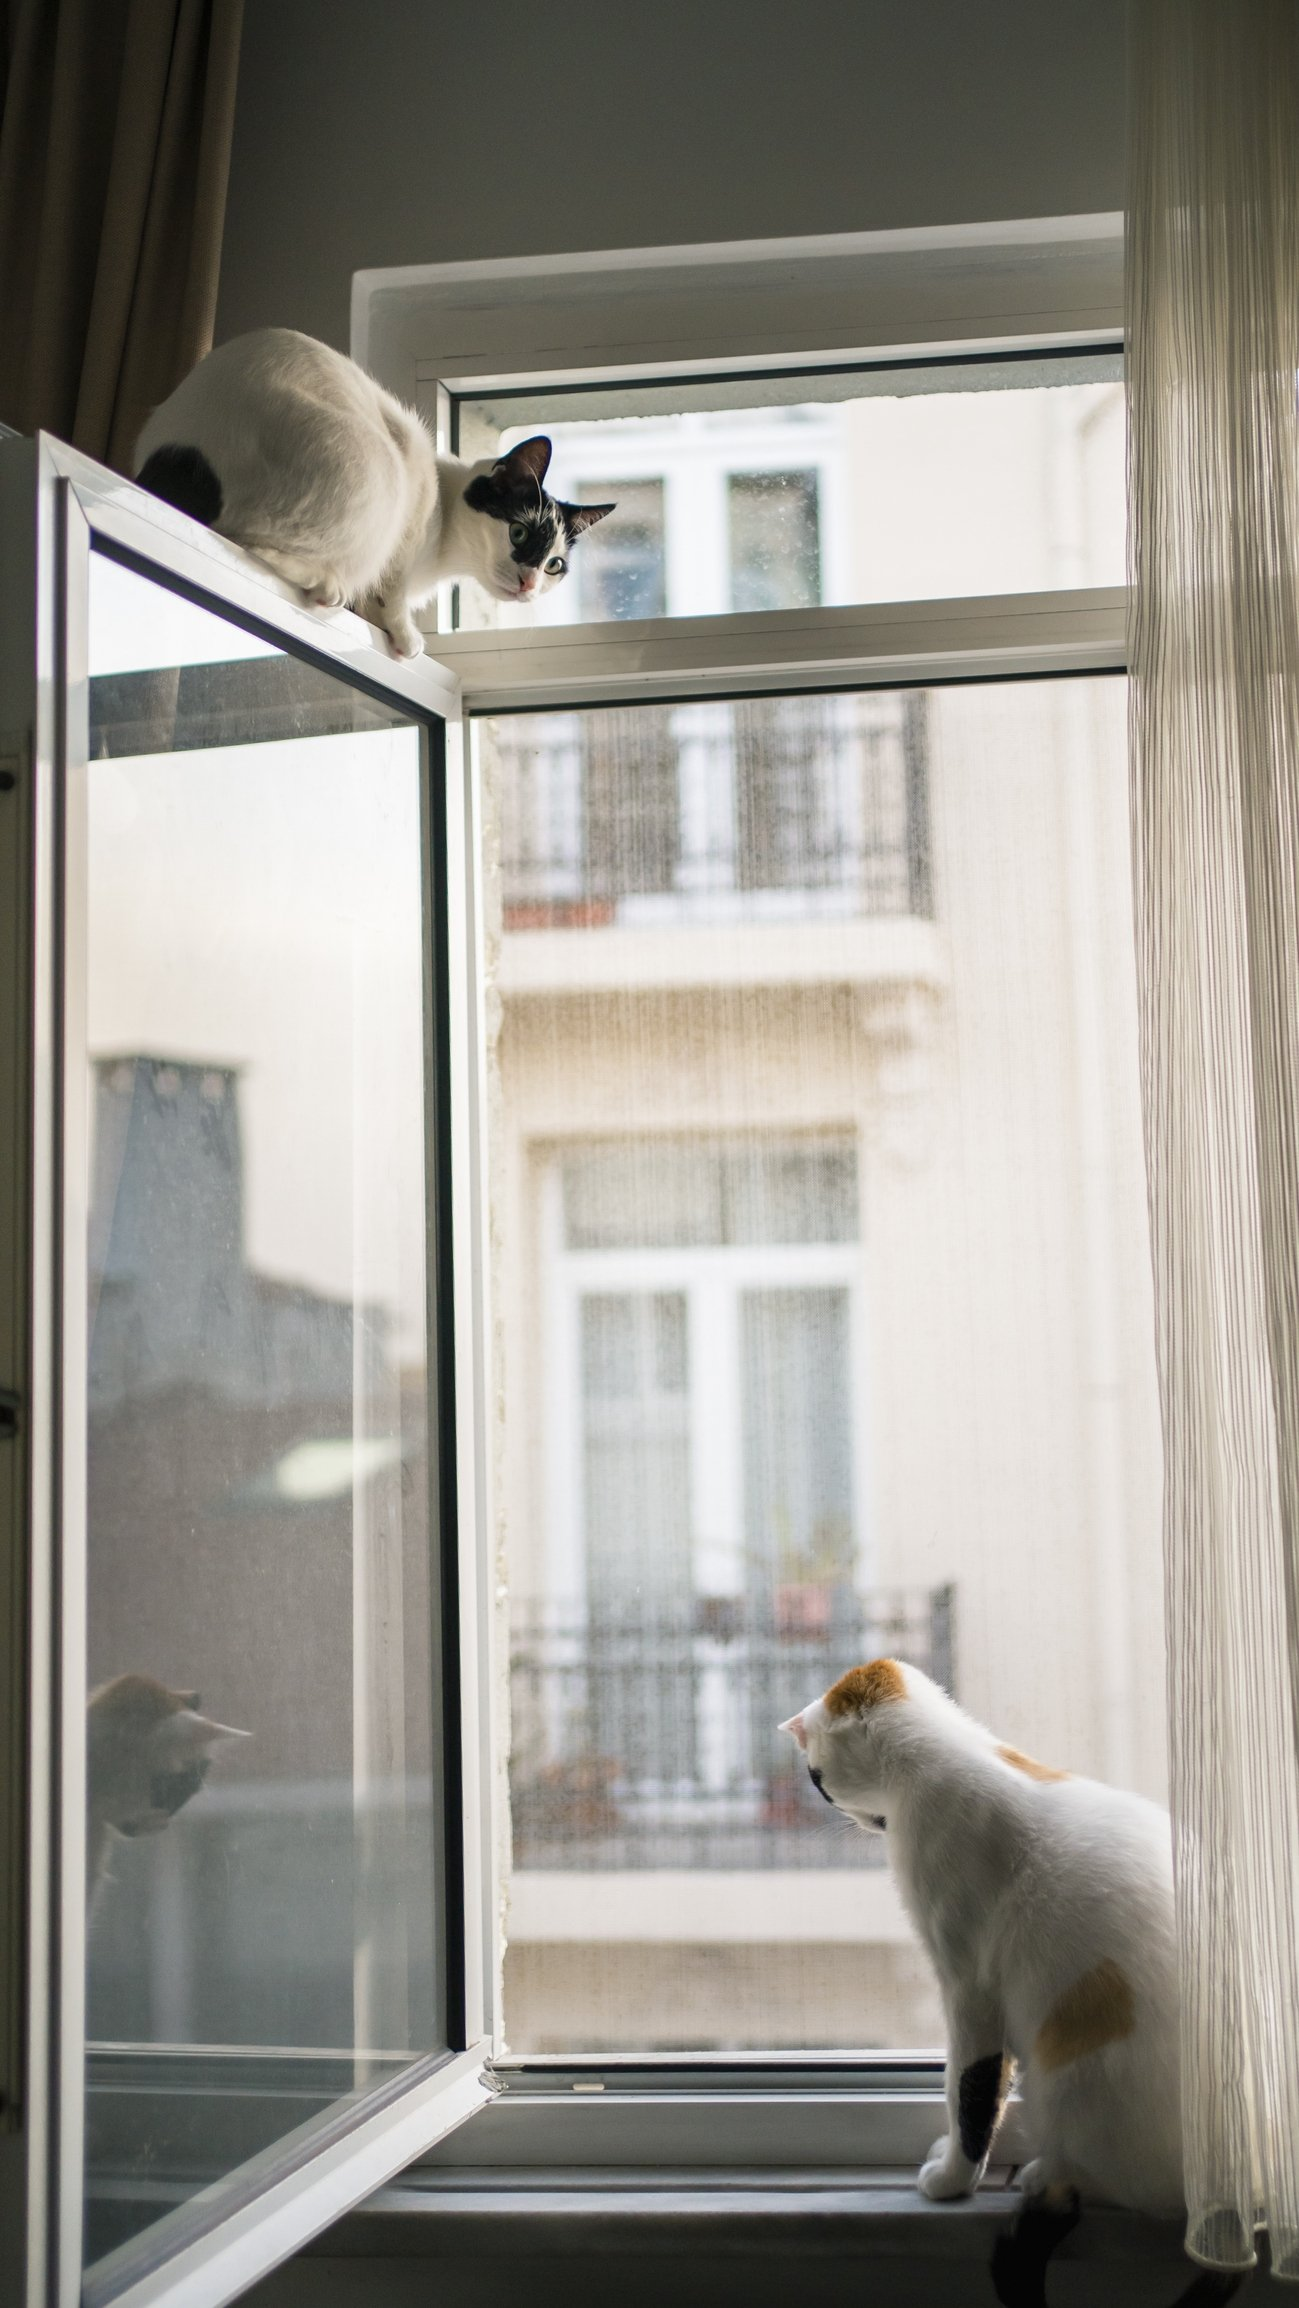 If you have cats or other pets, don't forget to ask the landlord about their house pet policies before renting. (iStock Photo)